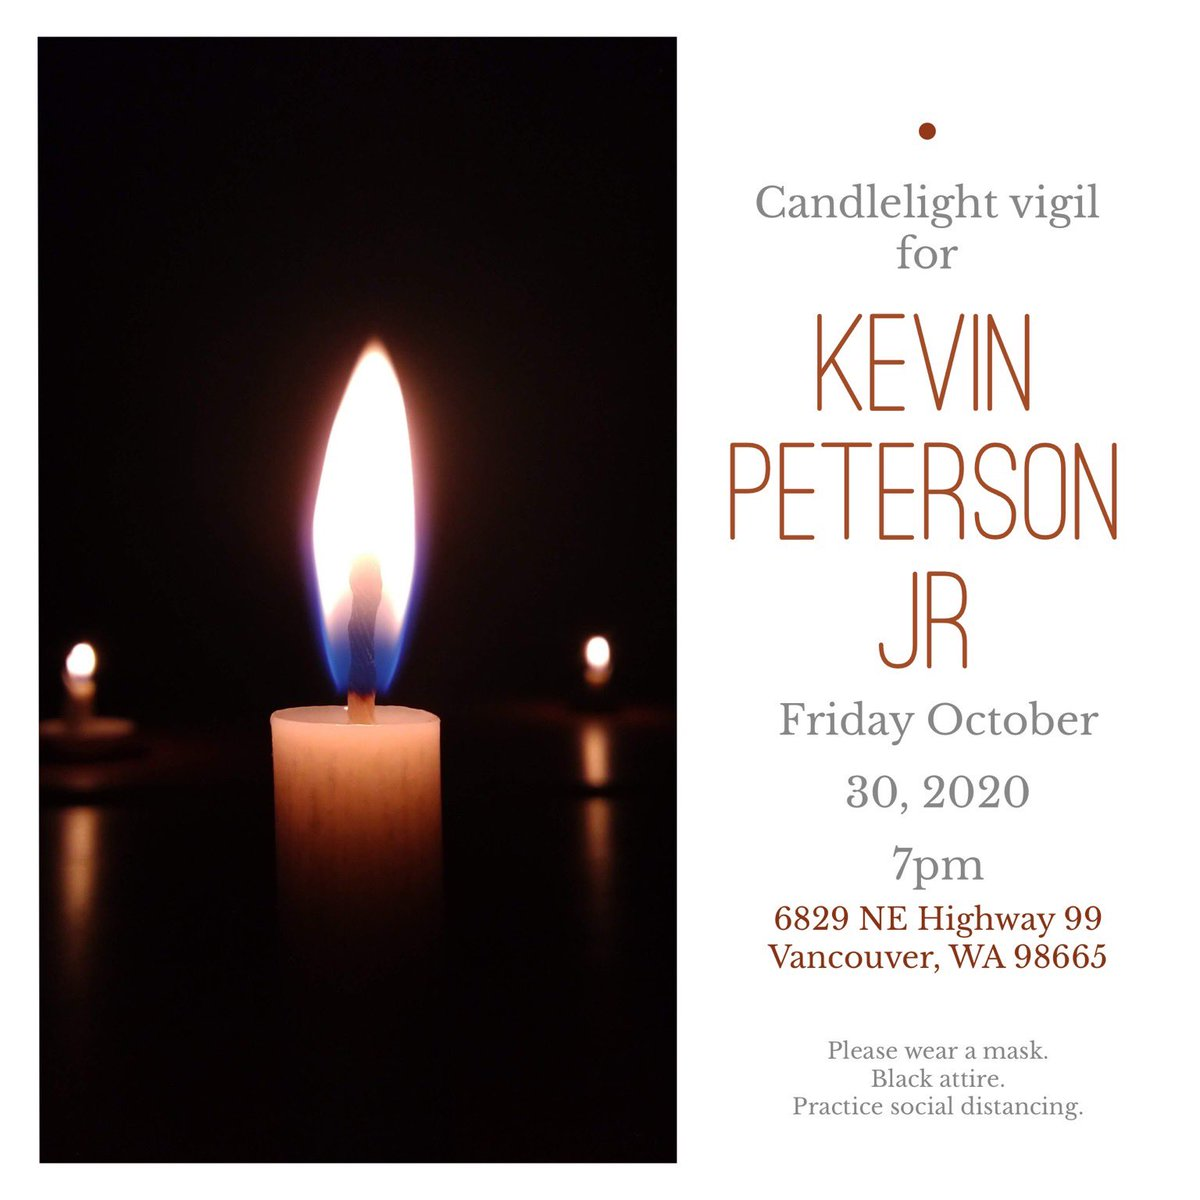 This is just sad. I watched family break down in the middle of the street over the loss of  #KevinPetersonJr and now Far-Right chuds are planning on harrassing a Vigil for him tonight. Ill add to thread about the threats last night and chatter I hear about tonight. 1/